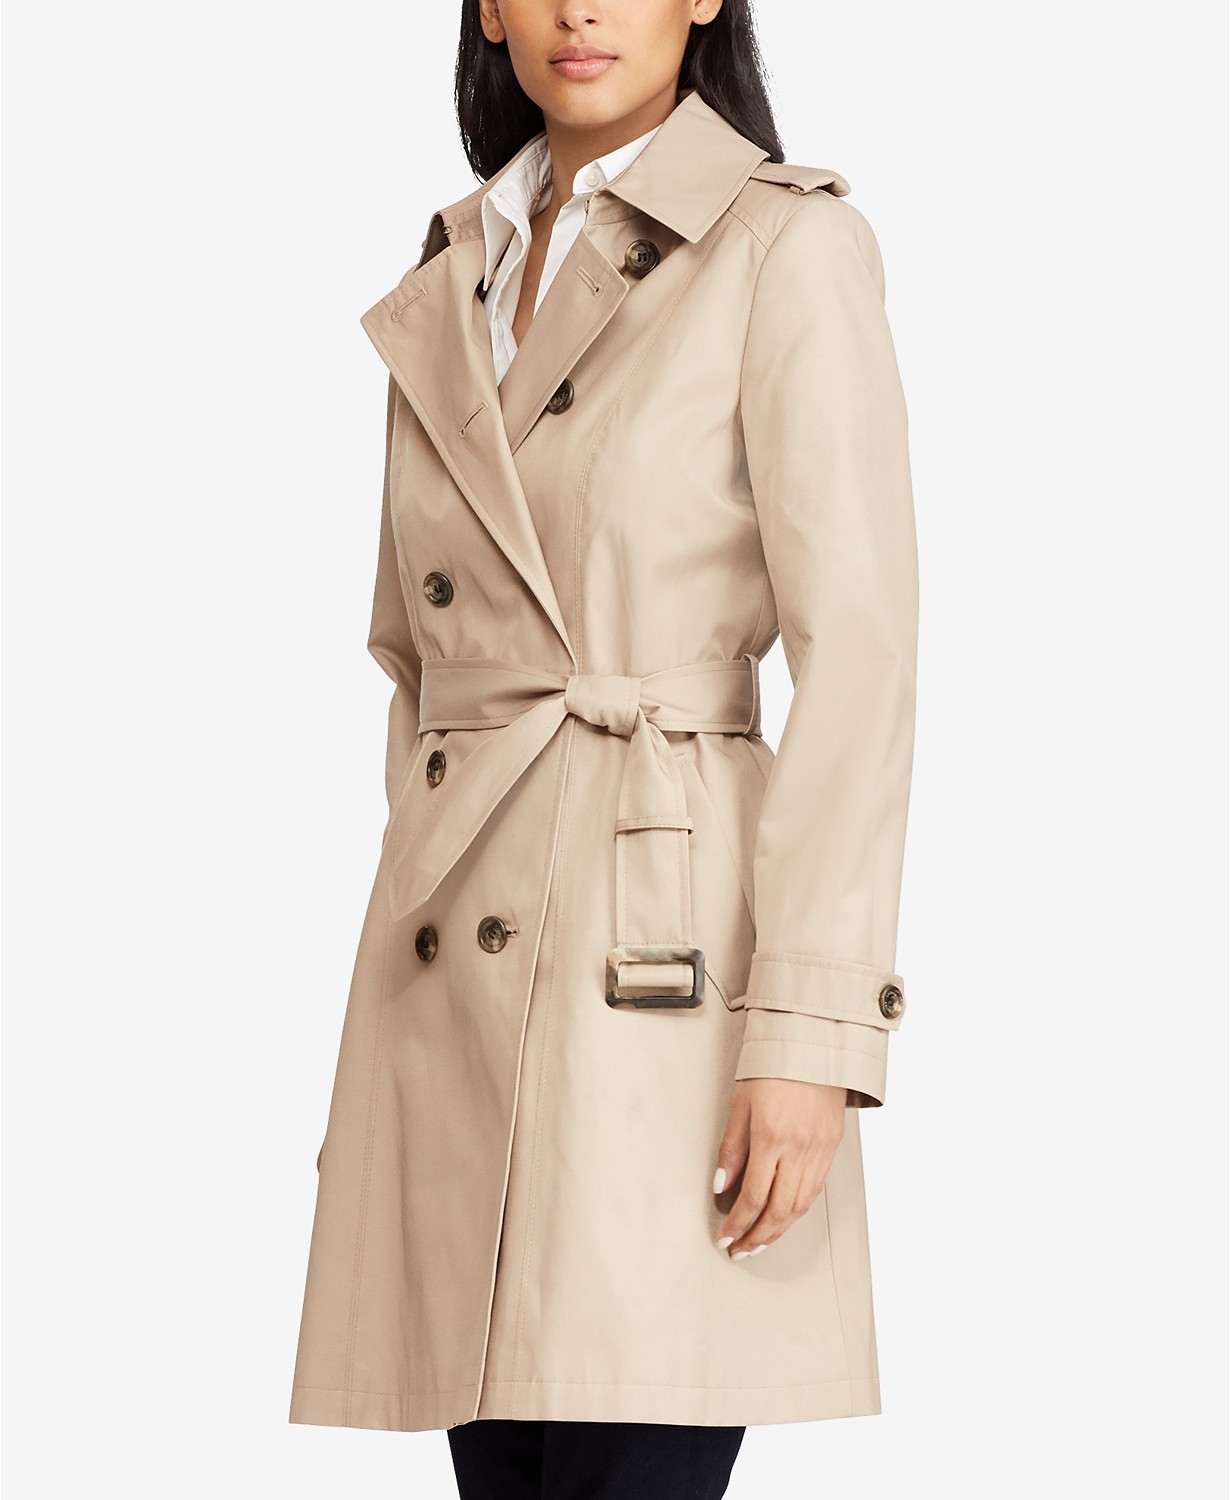 6 Classic, Meghan Markle-Inspired Trench Coats